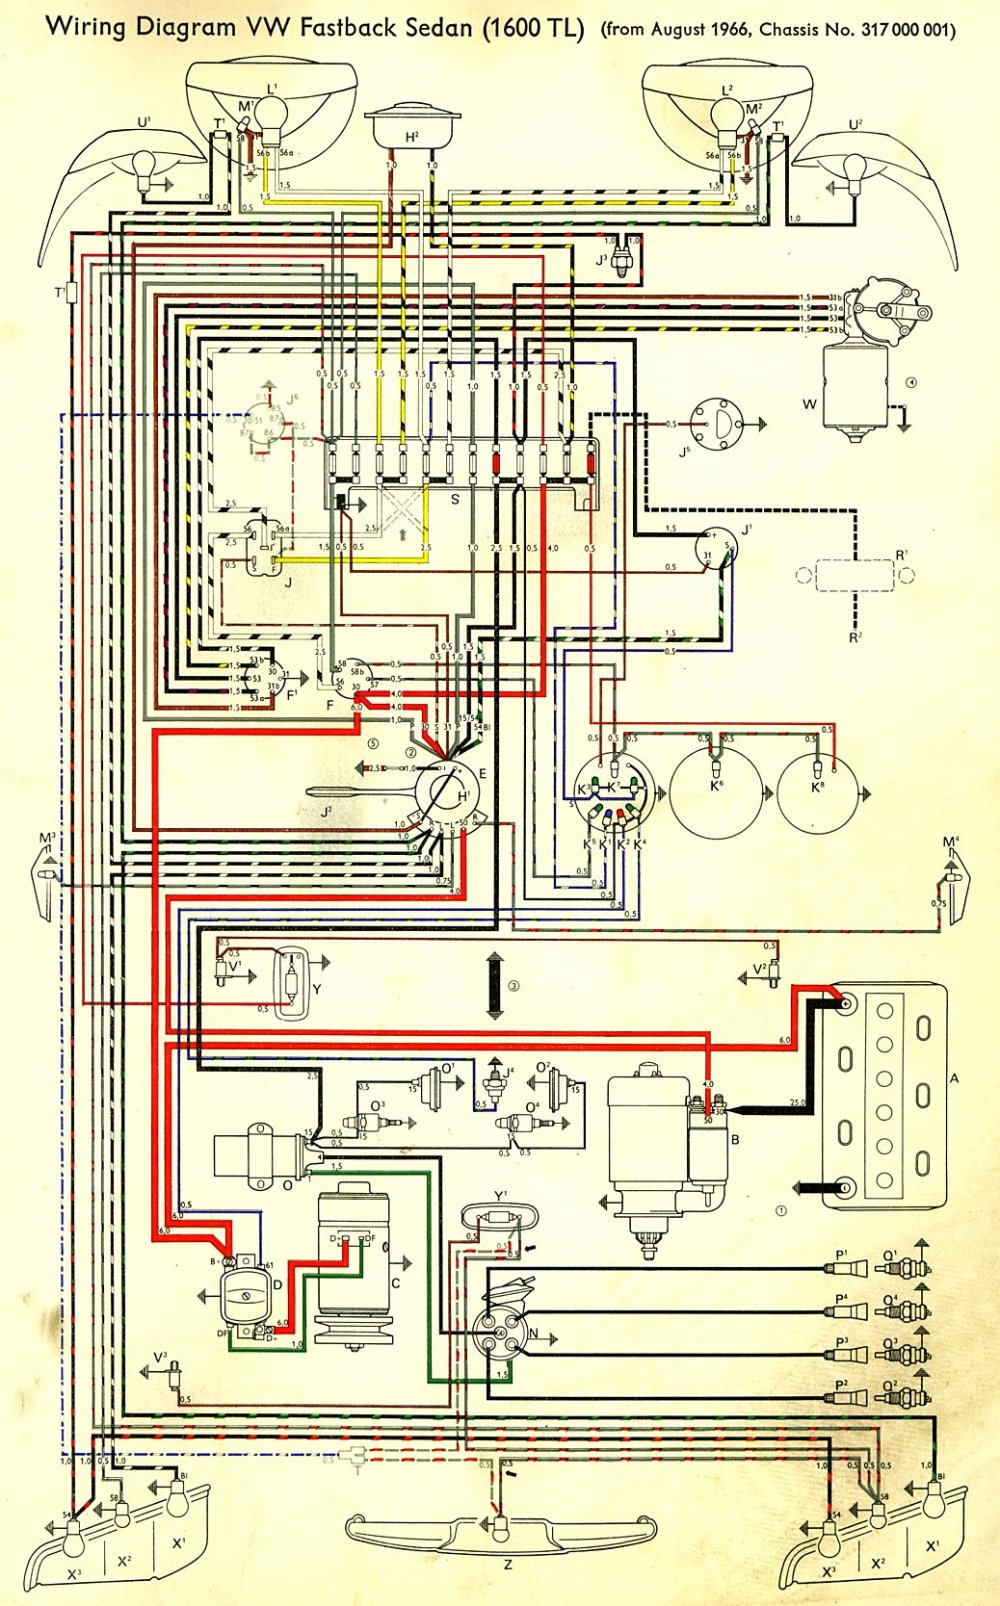 medium resolution of vw type 3 wiring diagram wiring diagram blogs rh 1 2 2 restaurant freinsheimer hof de volkswagen beetle wiring diagram 1971 vw super beetle wiring diagram